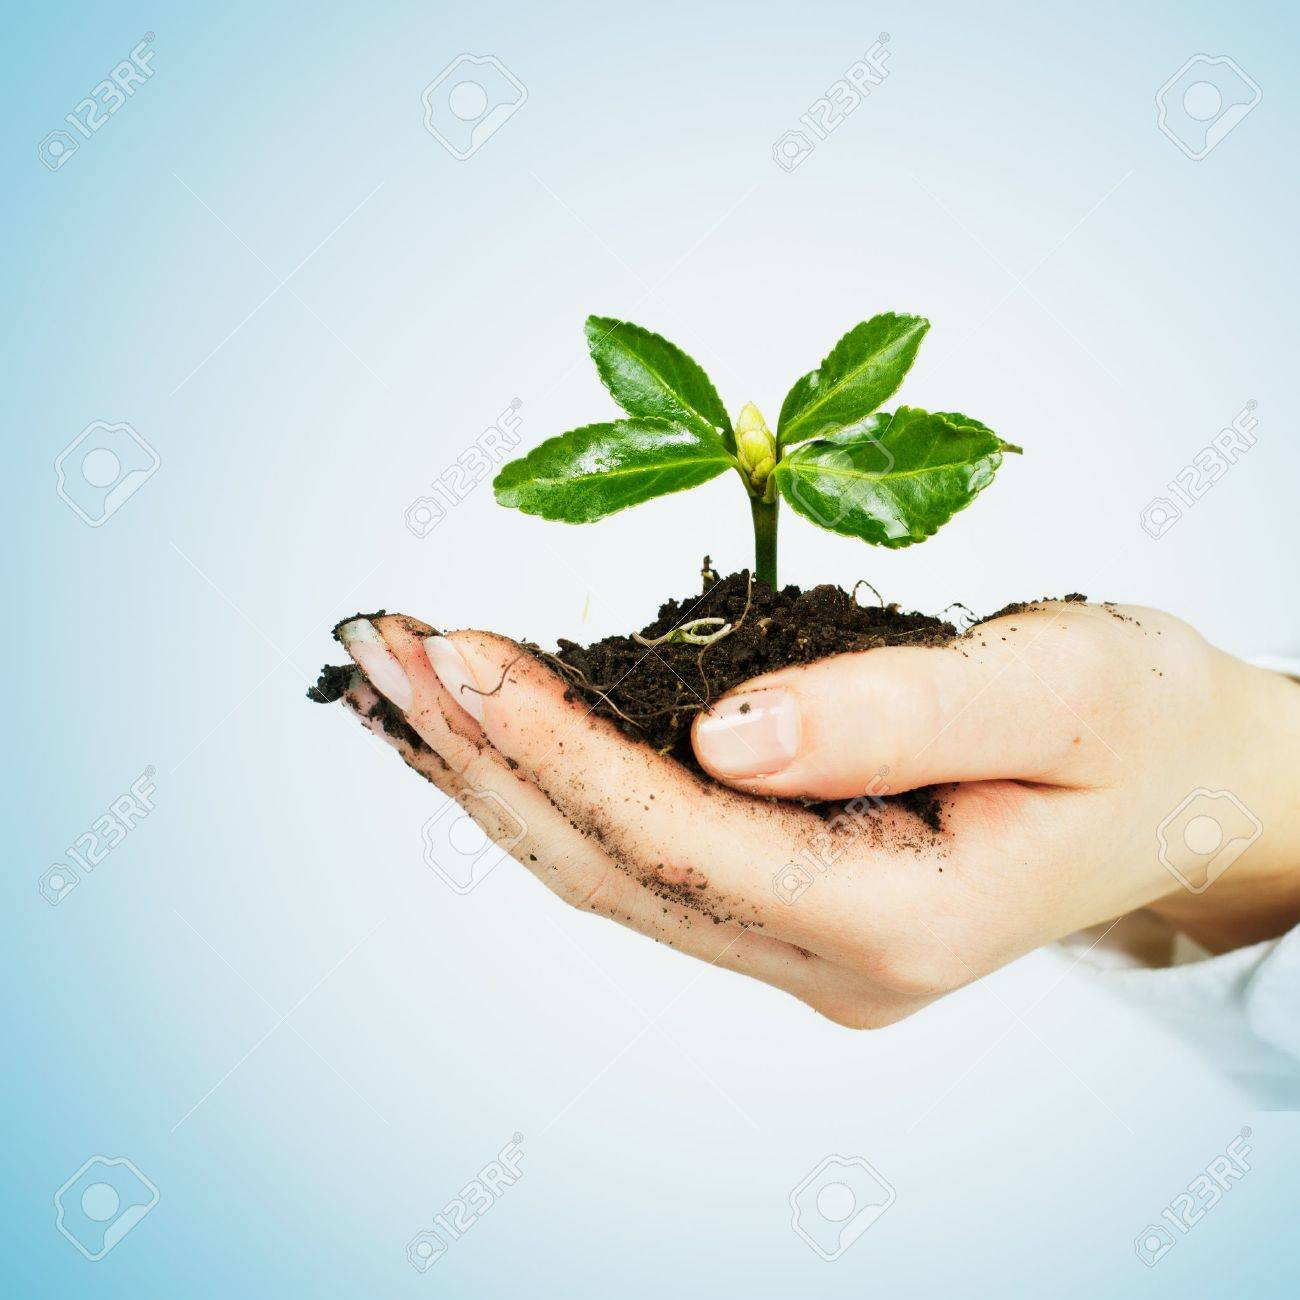 Small plant growing in the human hands - 13330999